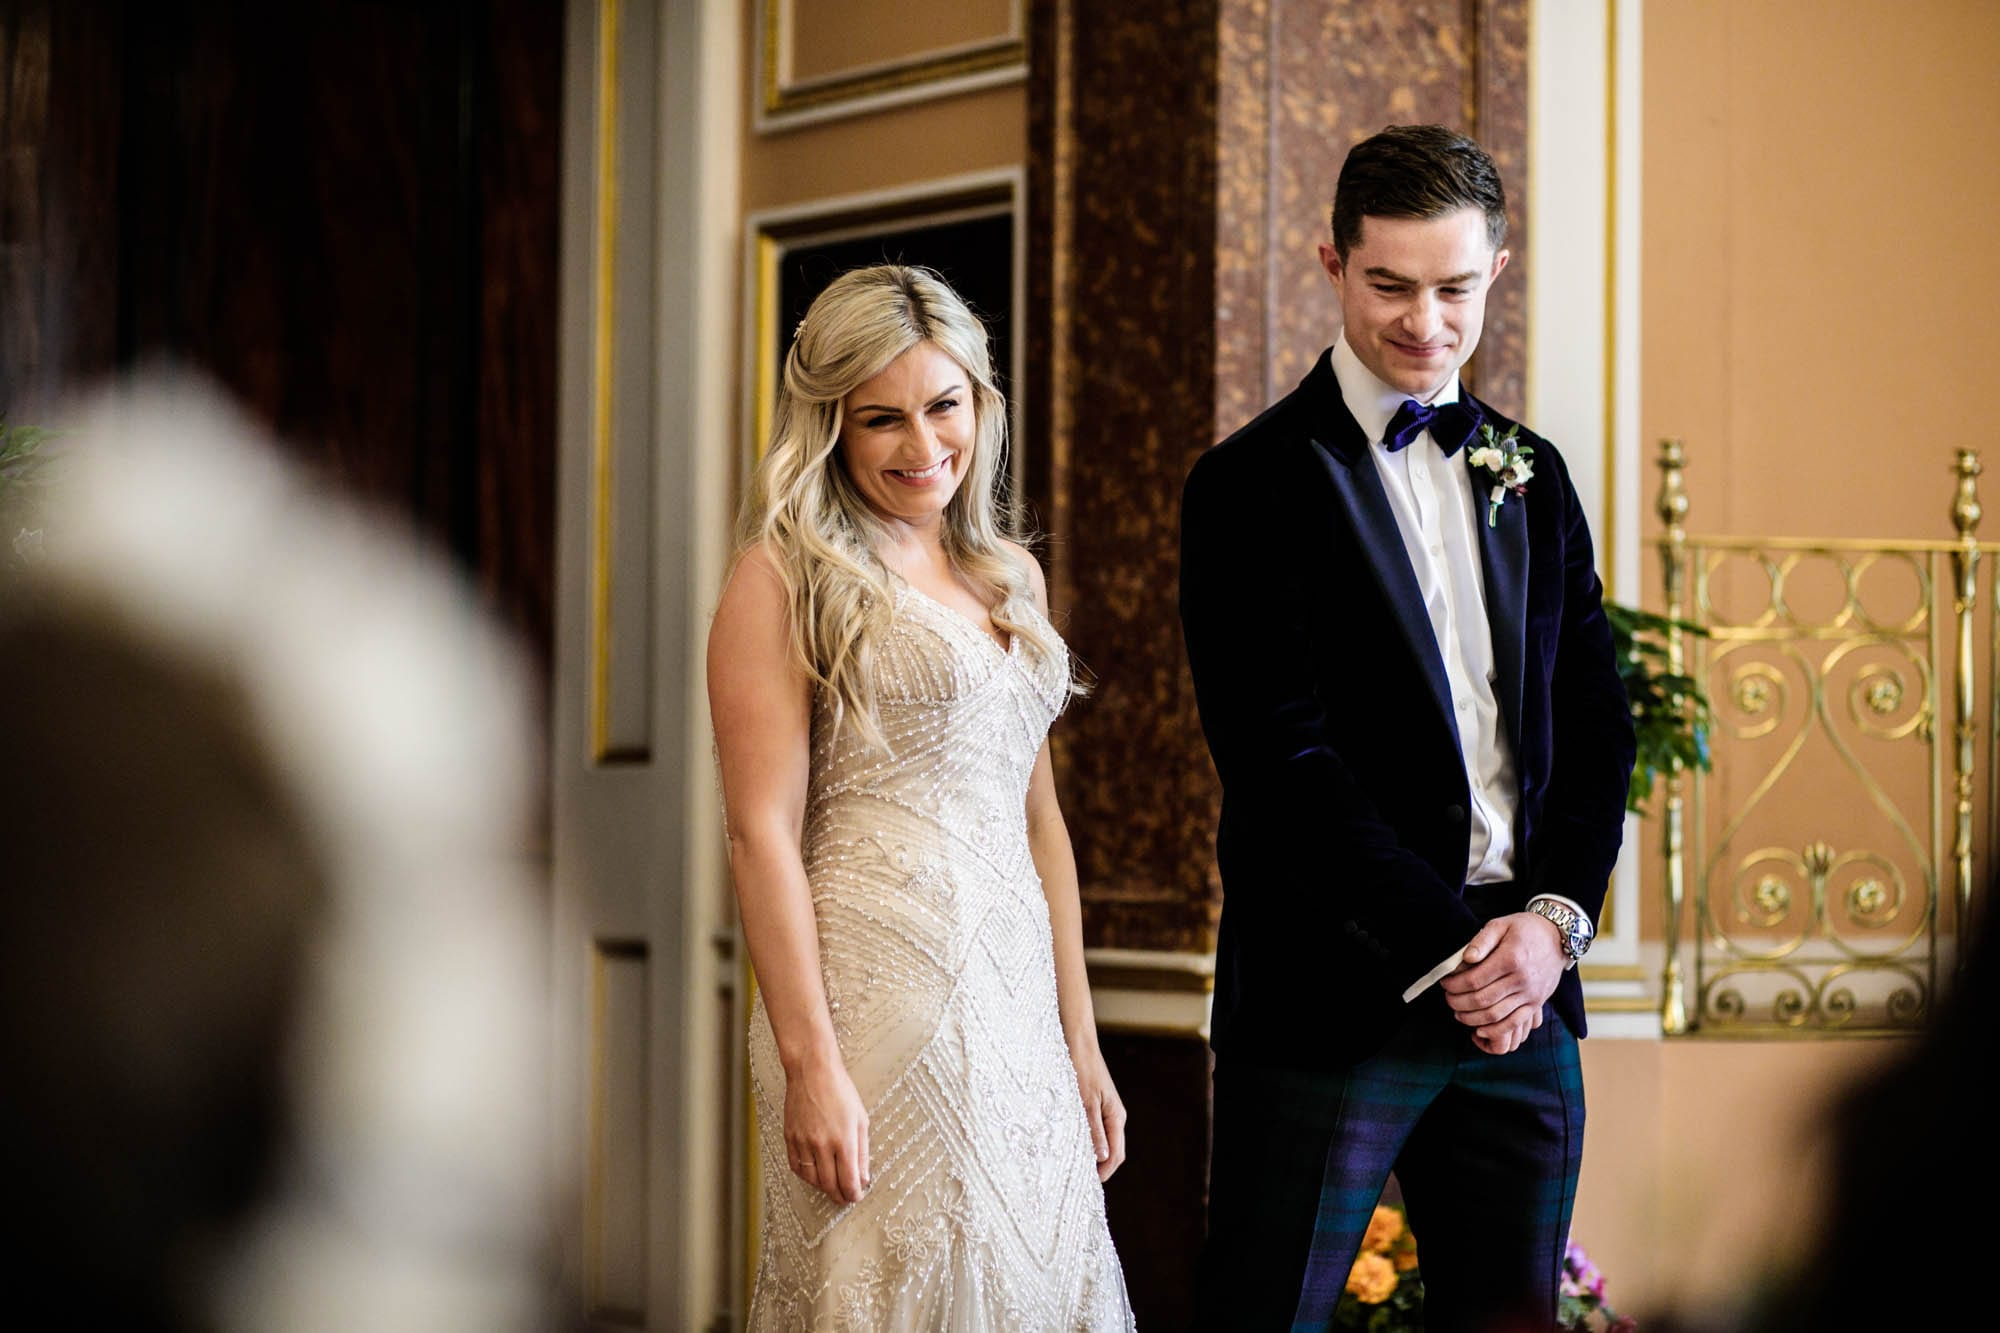 Liverpool Town Hall Wedding Photographs